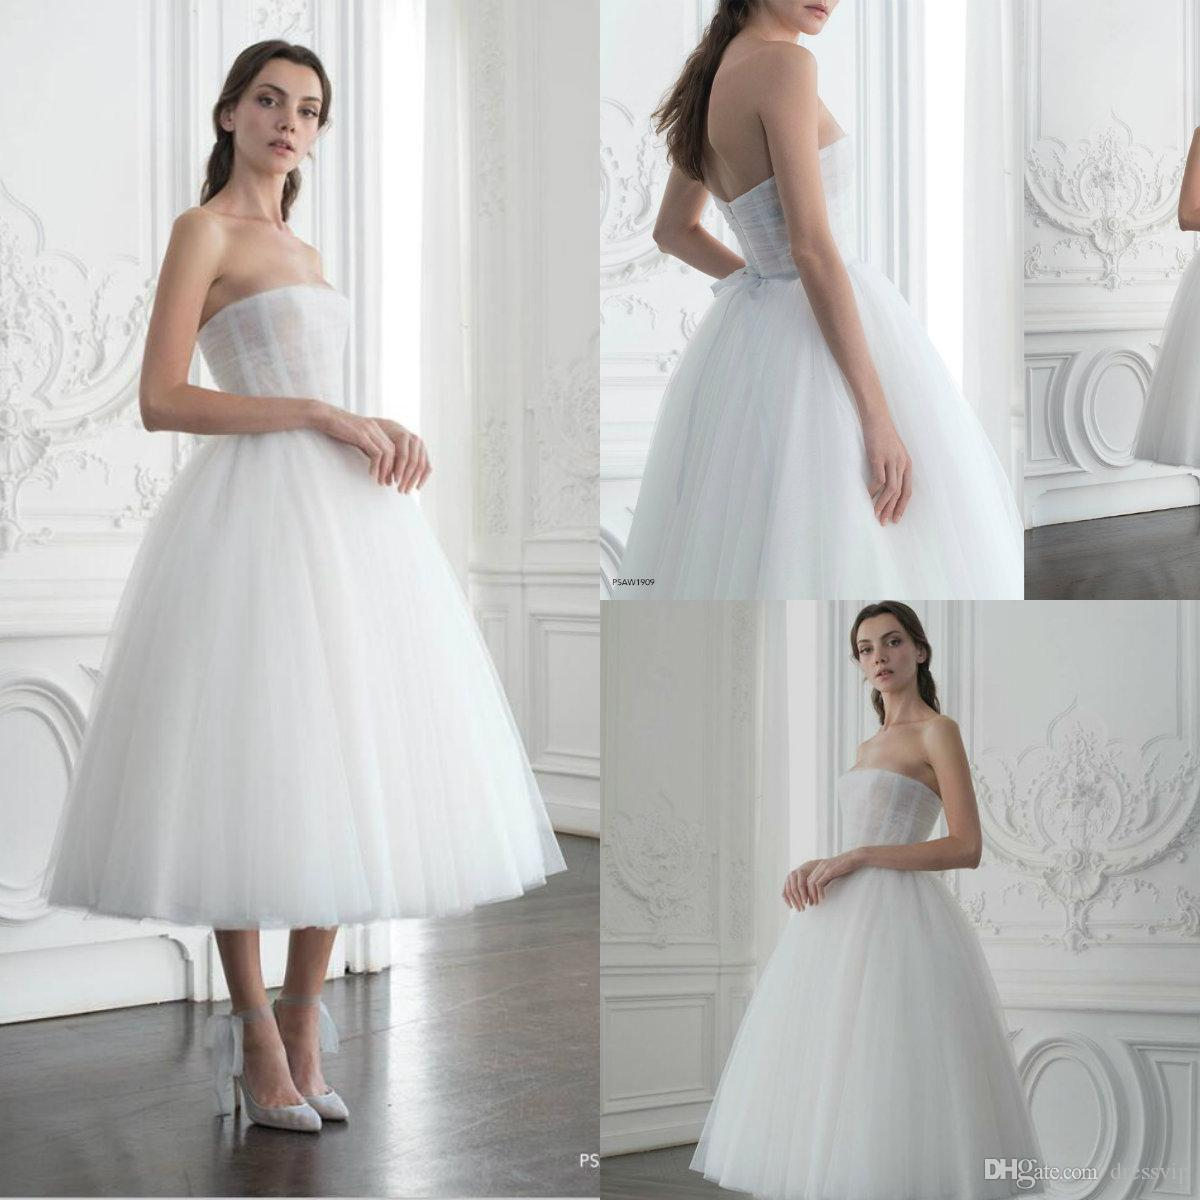 Paolo Sebastian Prom Dresses With Boning Strapless Tea Length Tulle  Illusion Elegant Evening Gowns Custom Made Cocktail Party Dresses Prince Prom  Dress With ... f792c5a2b